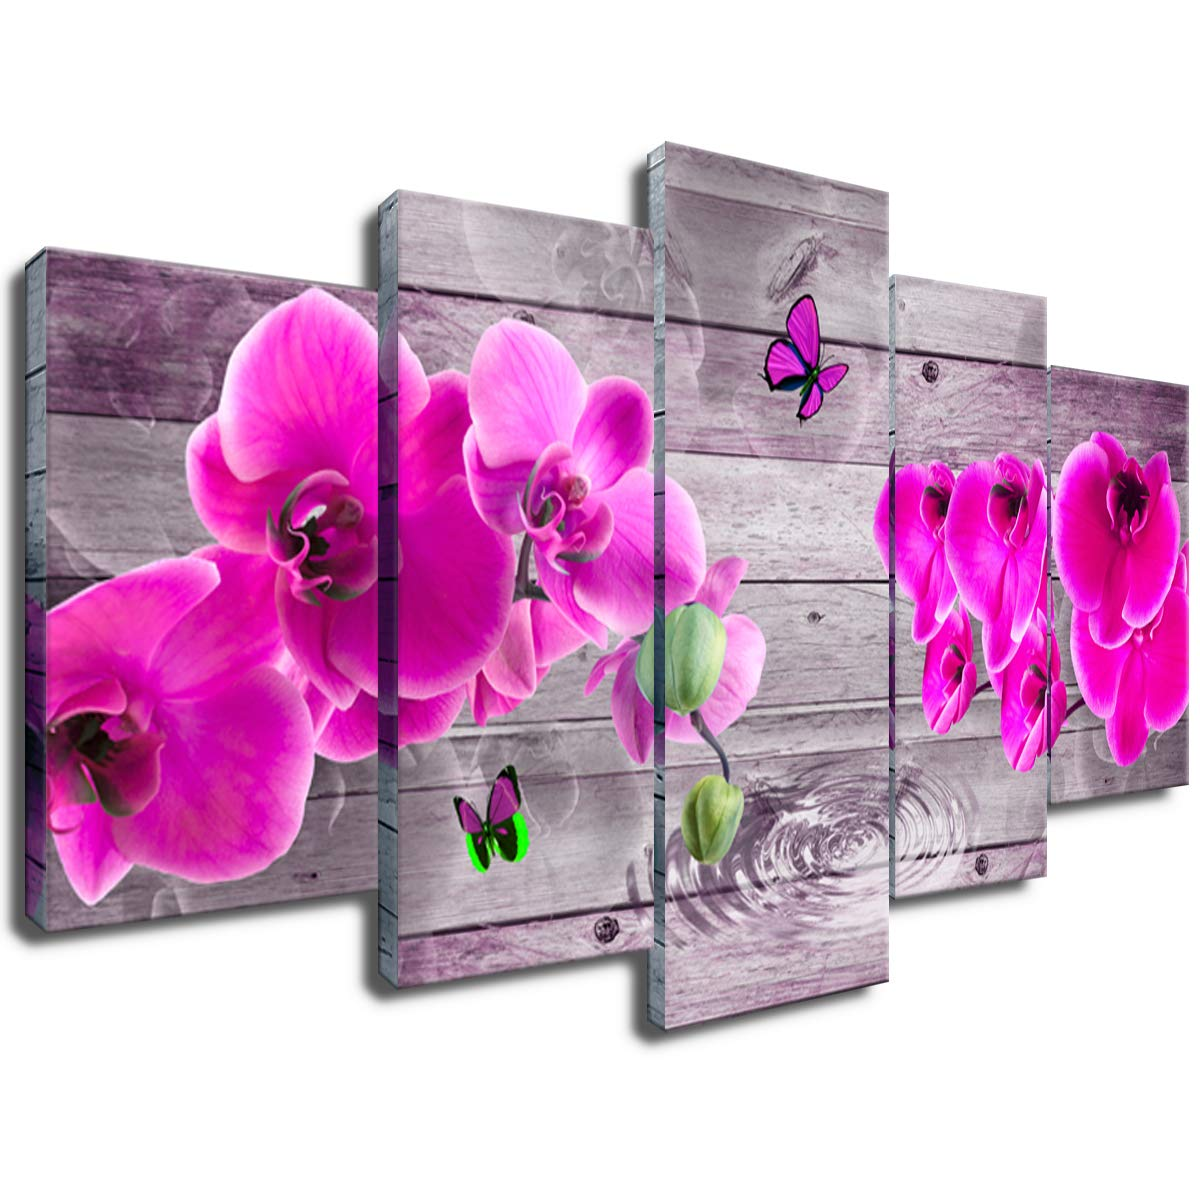 Large Flower Canvas Painting Modern Orchid Floral Print Wall Decor Art 5piece Home Decoration Easy Hanging 30x60 Amazon In Home Kitchen